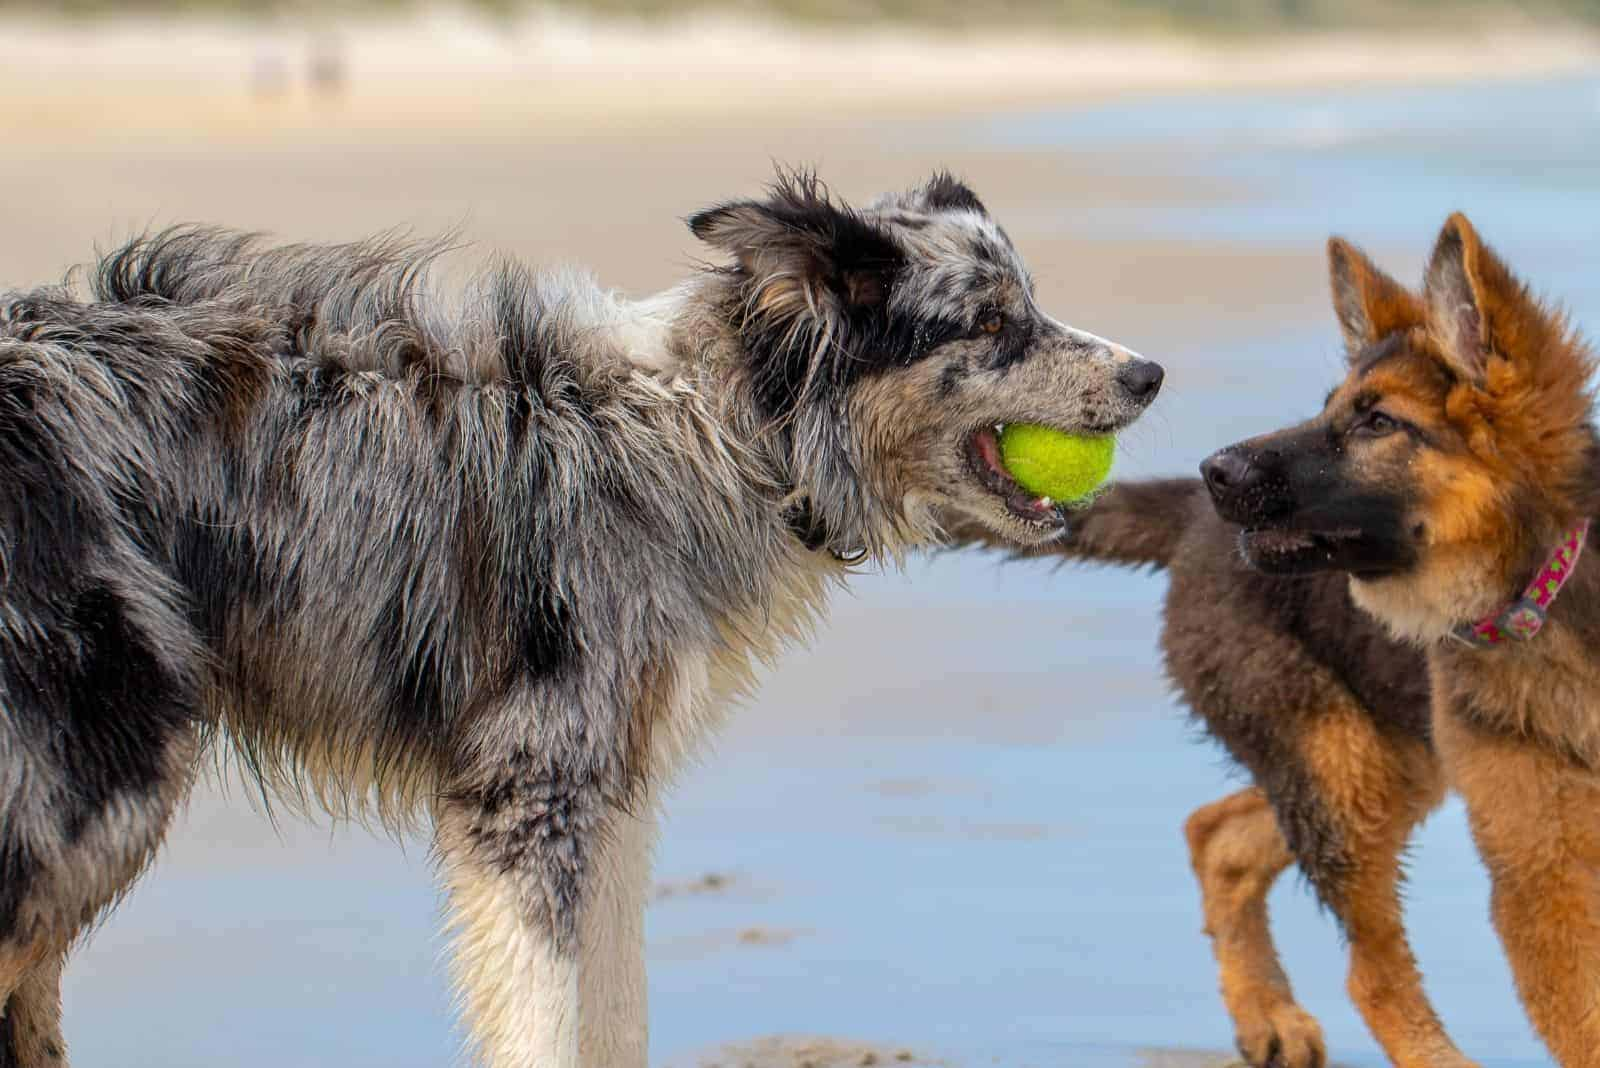 a German Shepherd dog plays with another dog